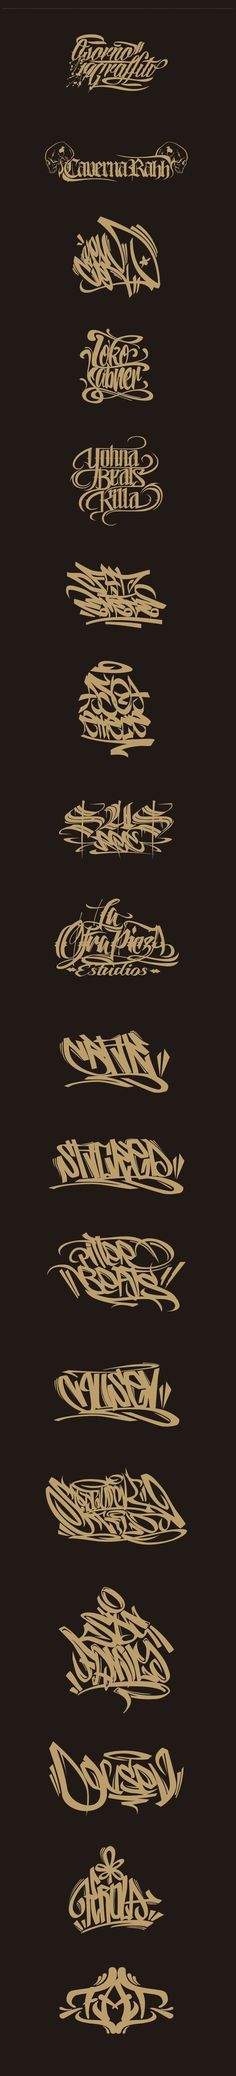 Lettering, Logos, Graffiti by Jorge Canicura, via Behance